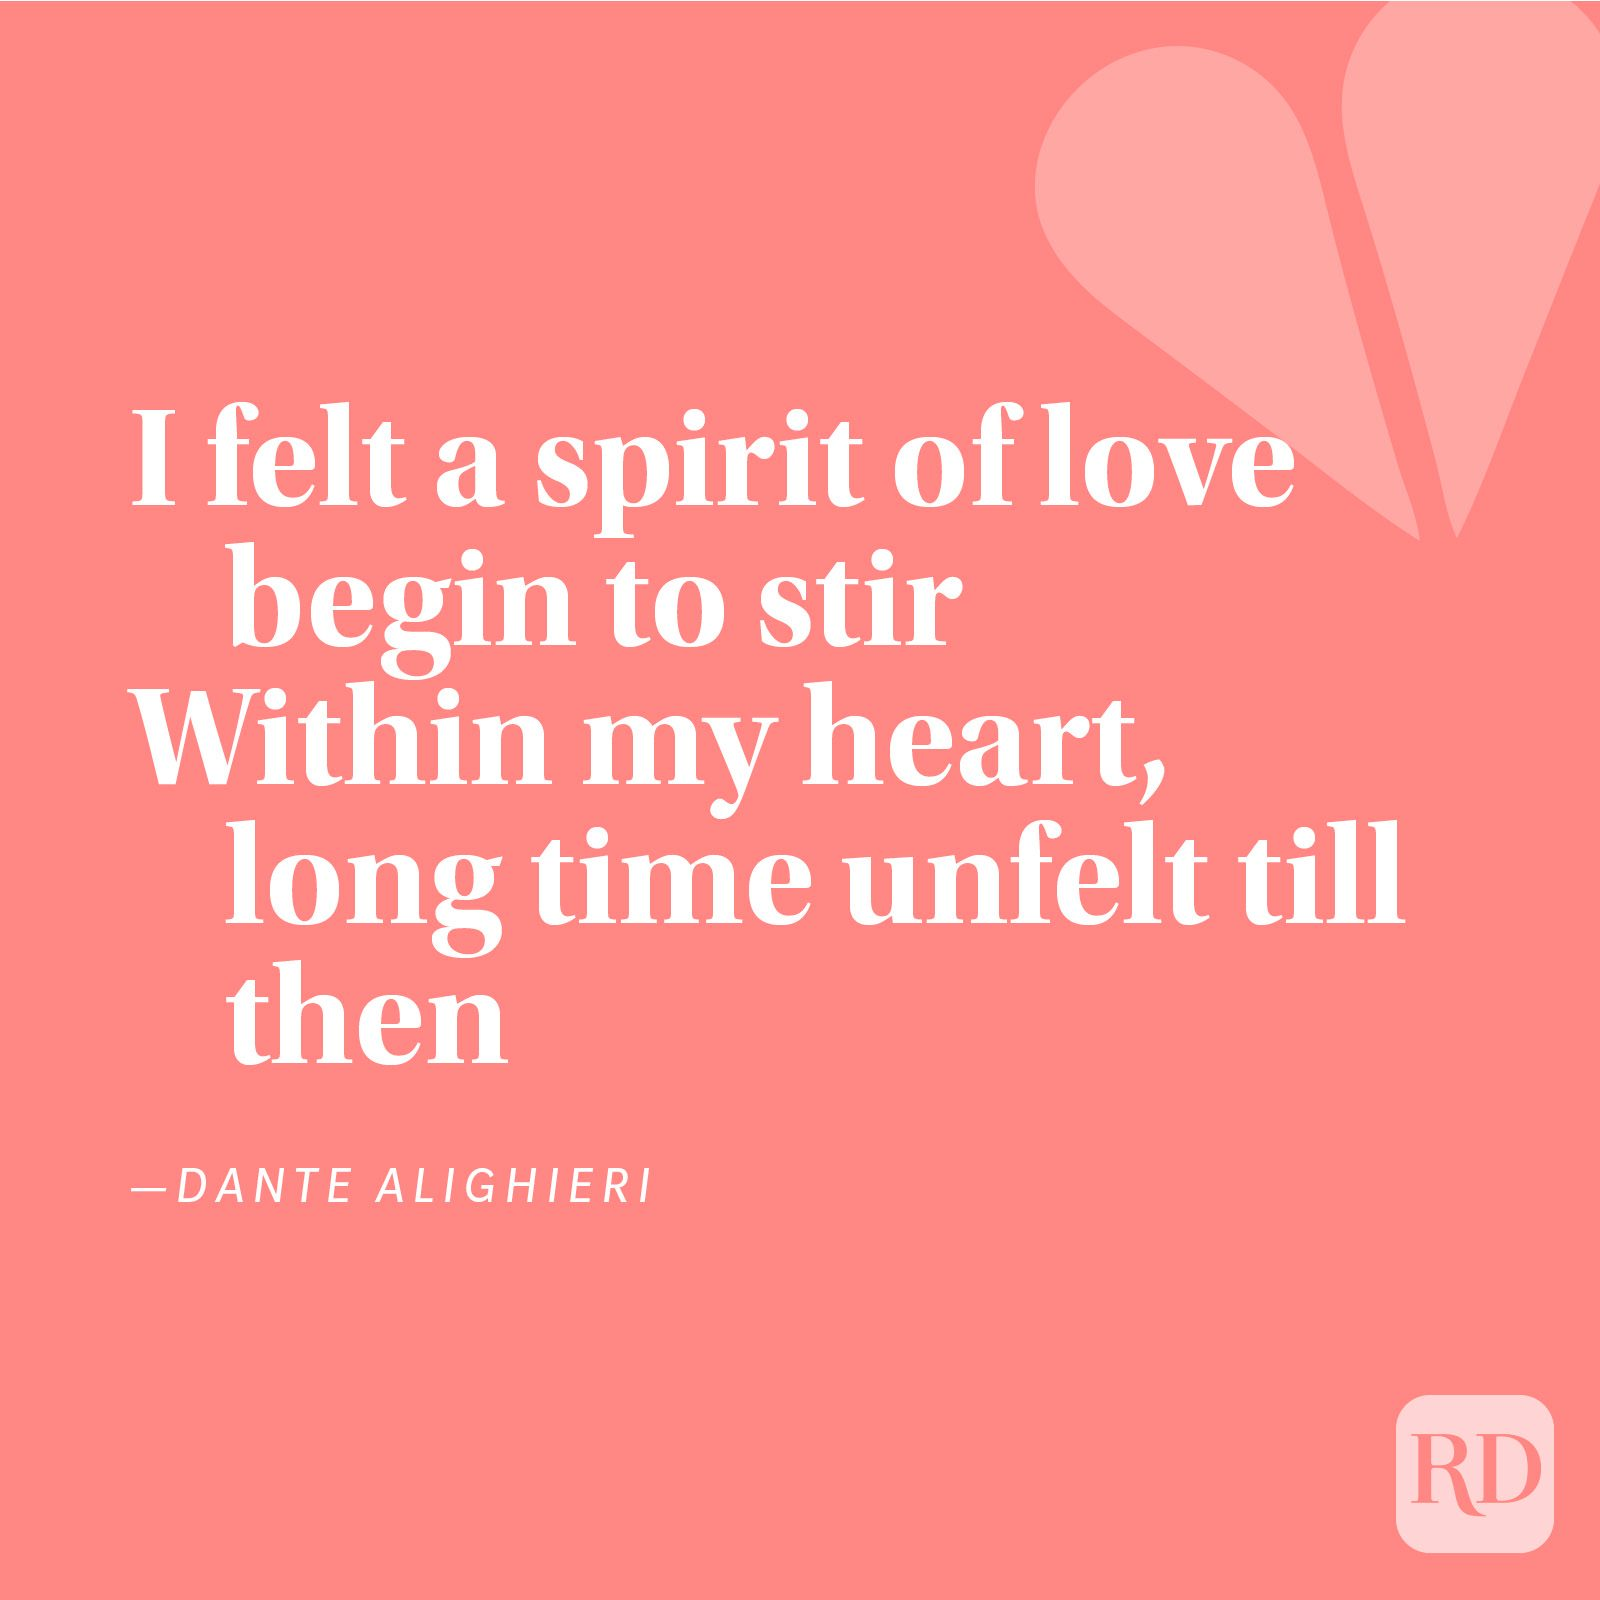 I felt a spirit of love begin to stir within my heart, long time unfelt till then - Dante Alghieri